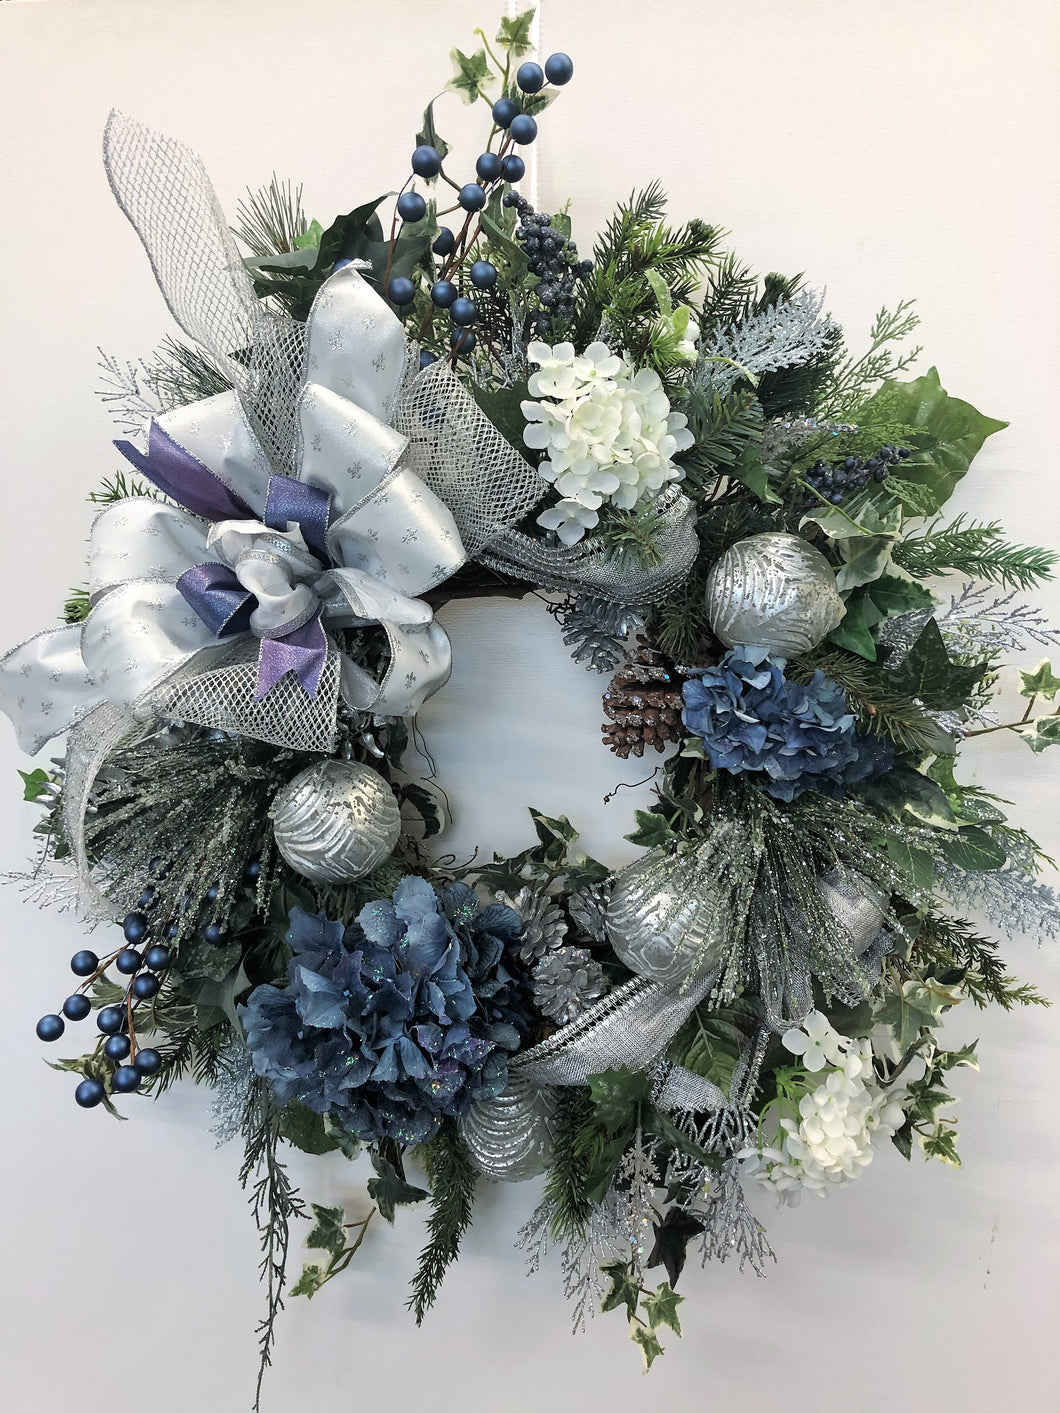 White and Blue Hydrangea Silk Floral Holiday Wreath with Silver Balls/Hol118 - April's Garden Wreath